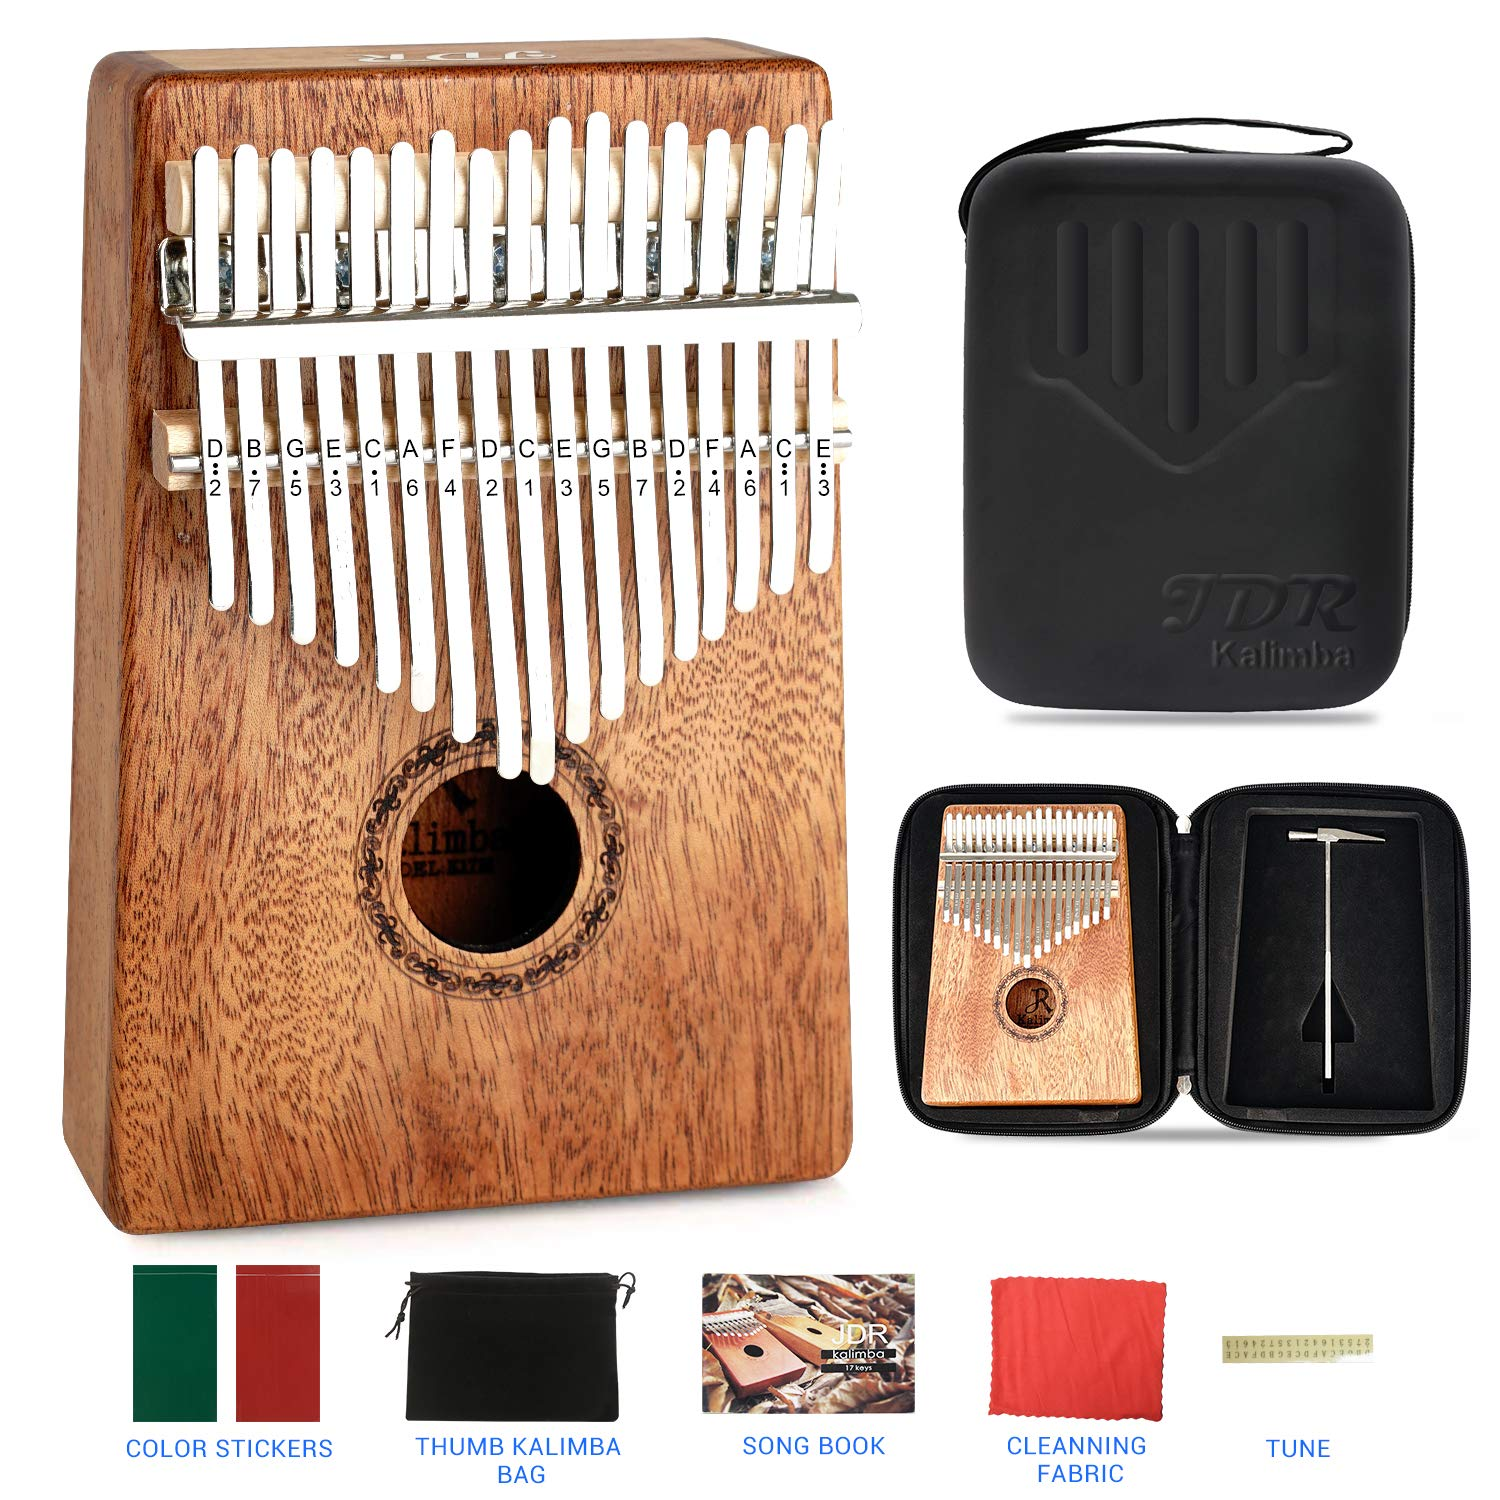 JDR 17 Keys kalimba, Thumb Piano with EVA Waterproof Hard Protective Case, Tuning Hammer and Music book, Unique and great birthday gift for musicians or kids without any musical basis by JDR (Image #1)